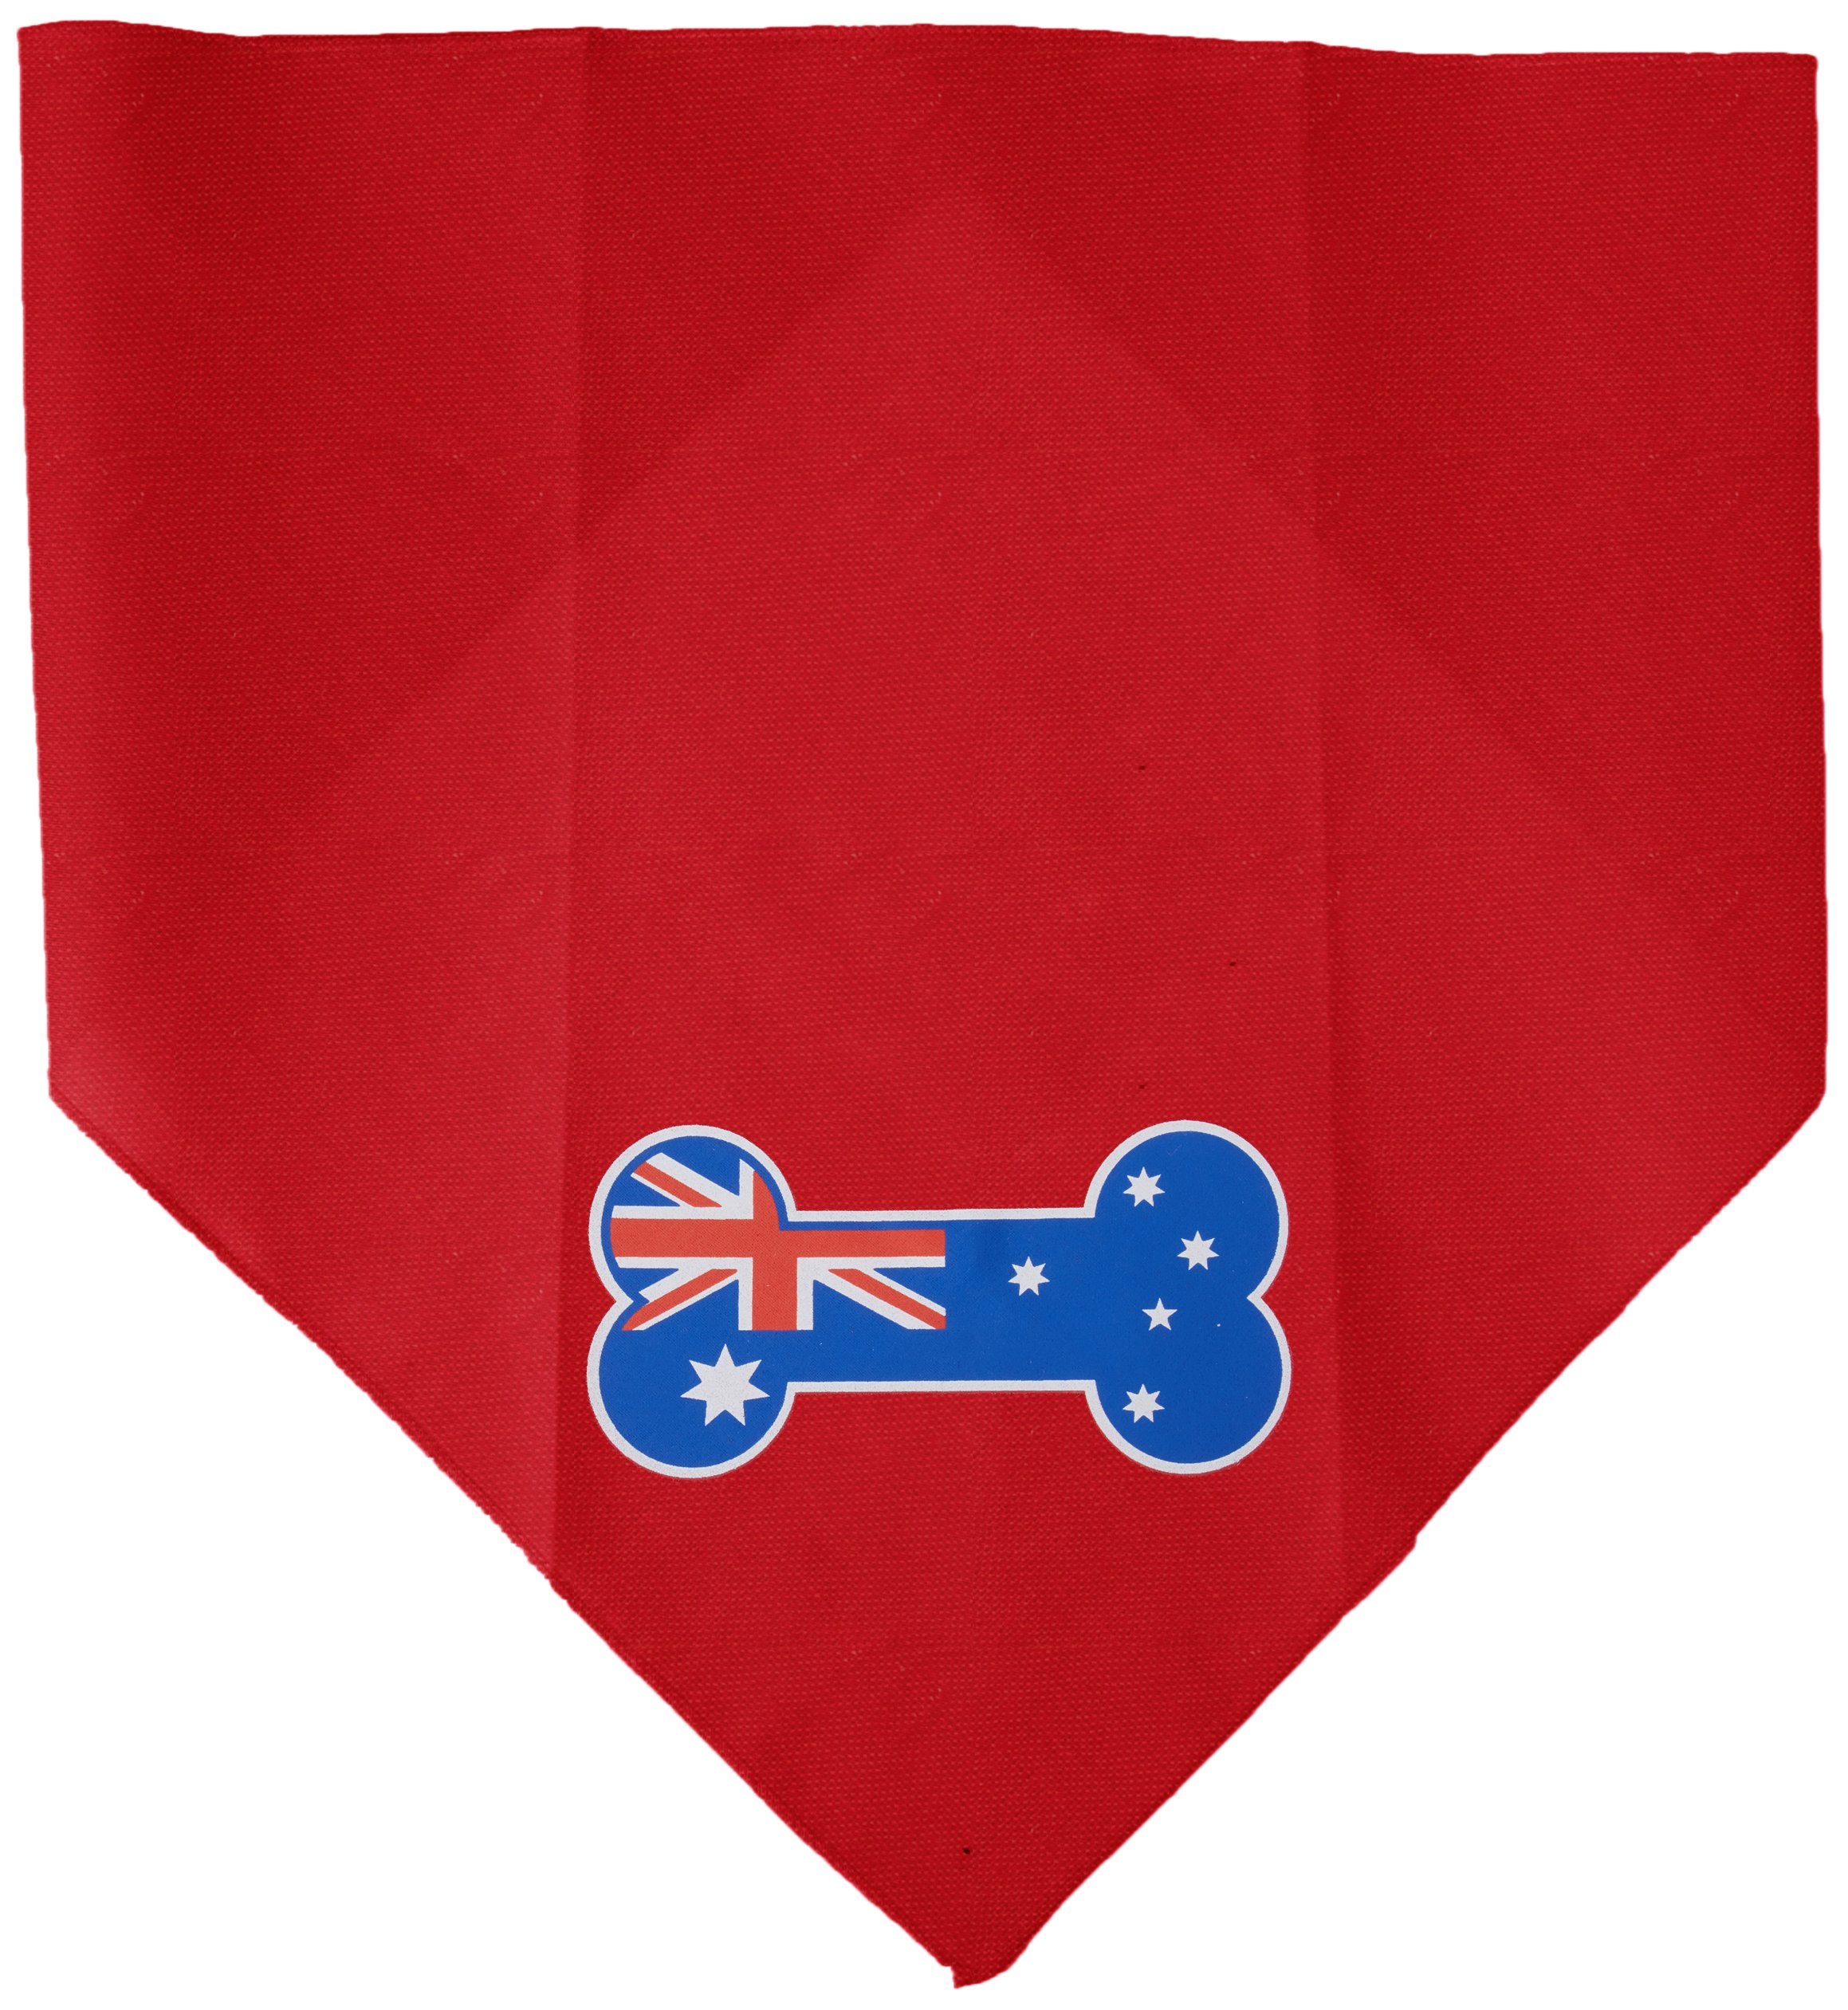 Mirage Pet Products Bone Flag Australian Screen Print Bandana for Pets, Large, Red by Mirage Pet Products (Image #1)